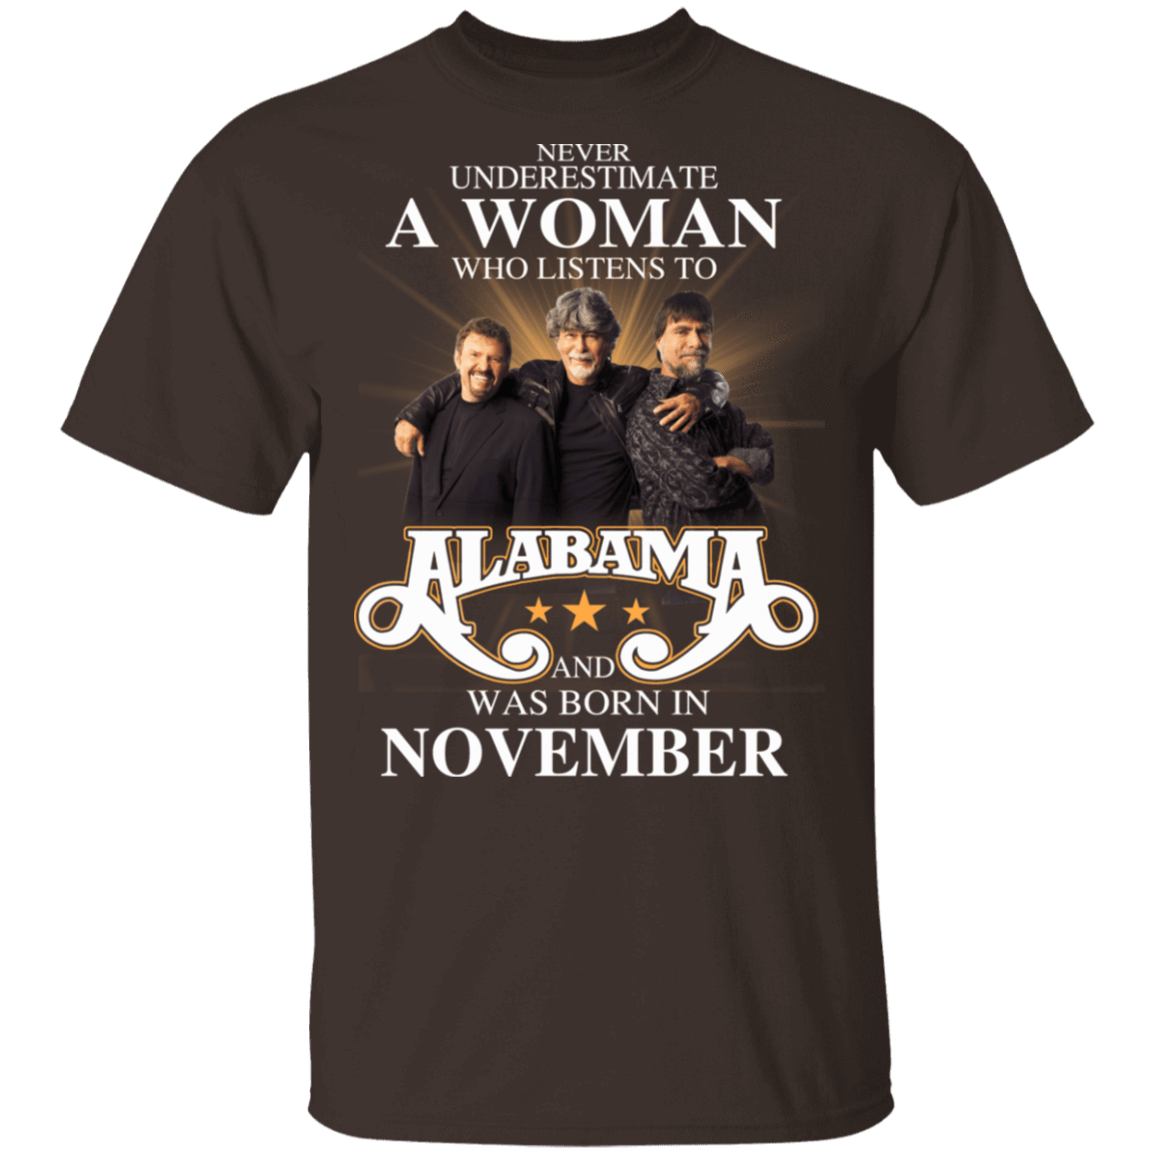 A Woman Who Listens To Alabama And Was Born In November T-Shirts, Hoodies, Tank 1049-9956-81138095-48152 - Tee Ript